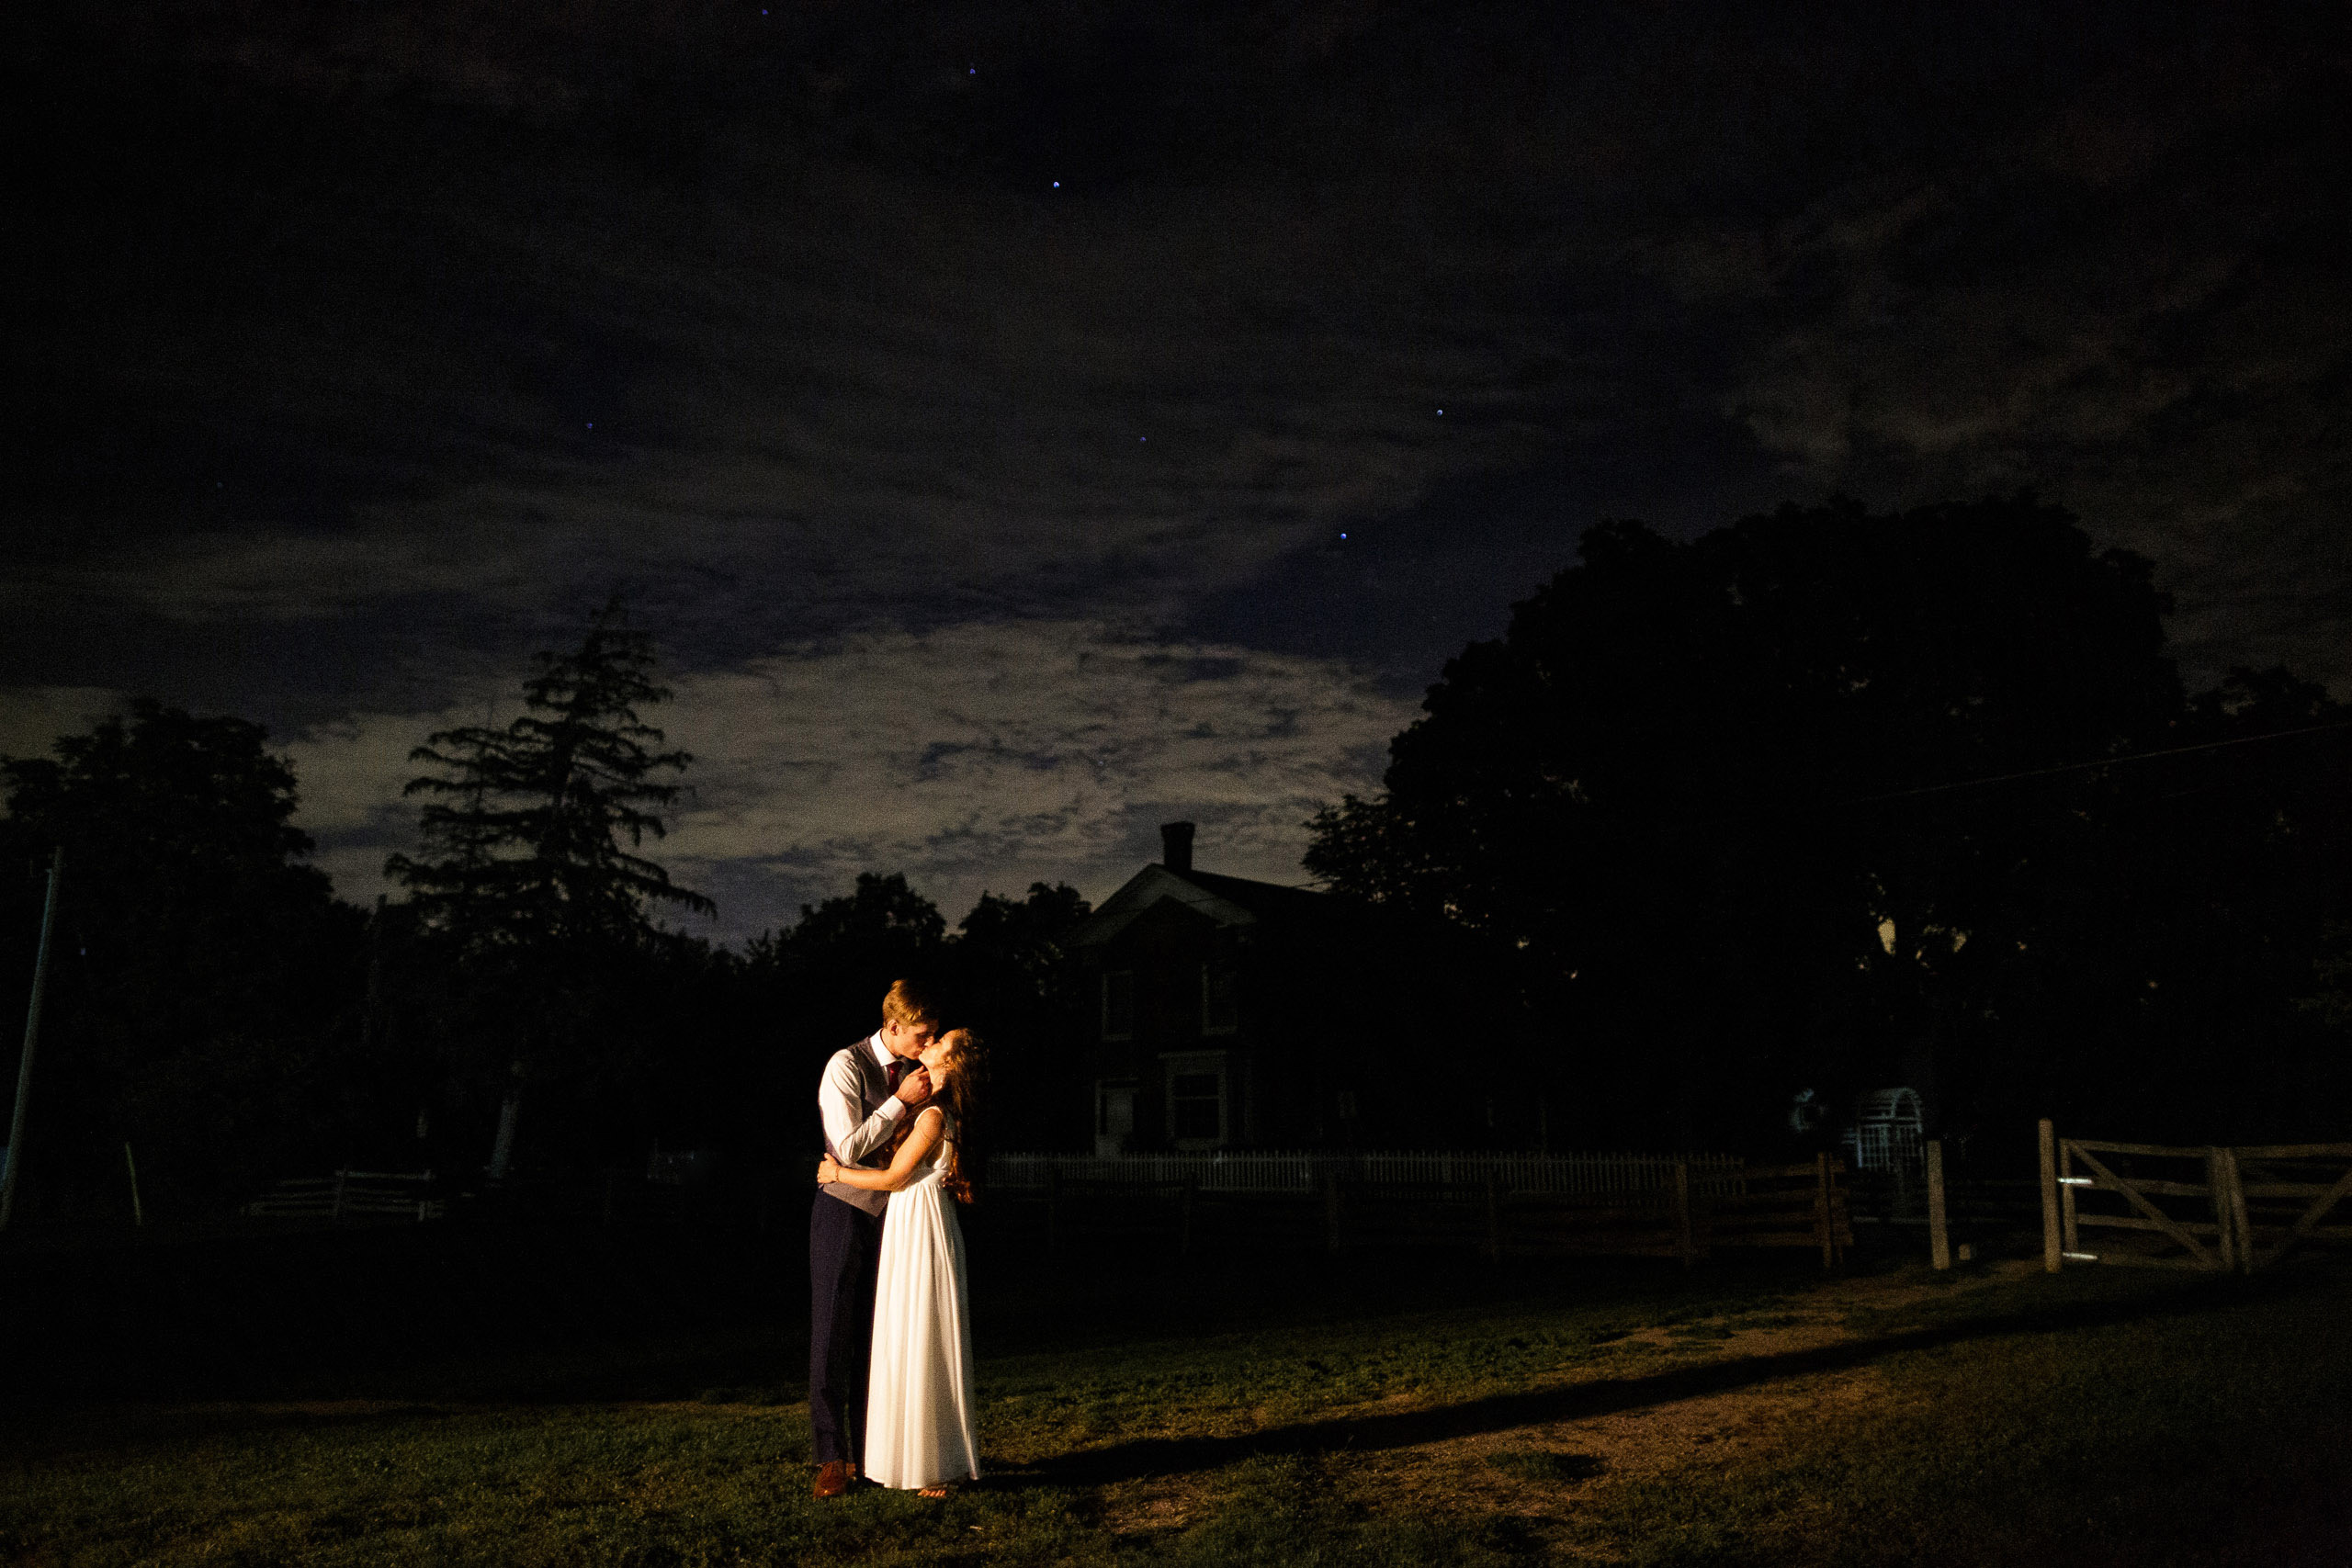 balls falls night wedding rustic barn stars wedding photographer brooker events